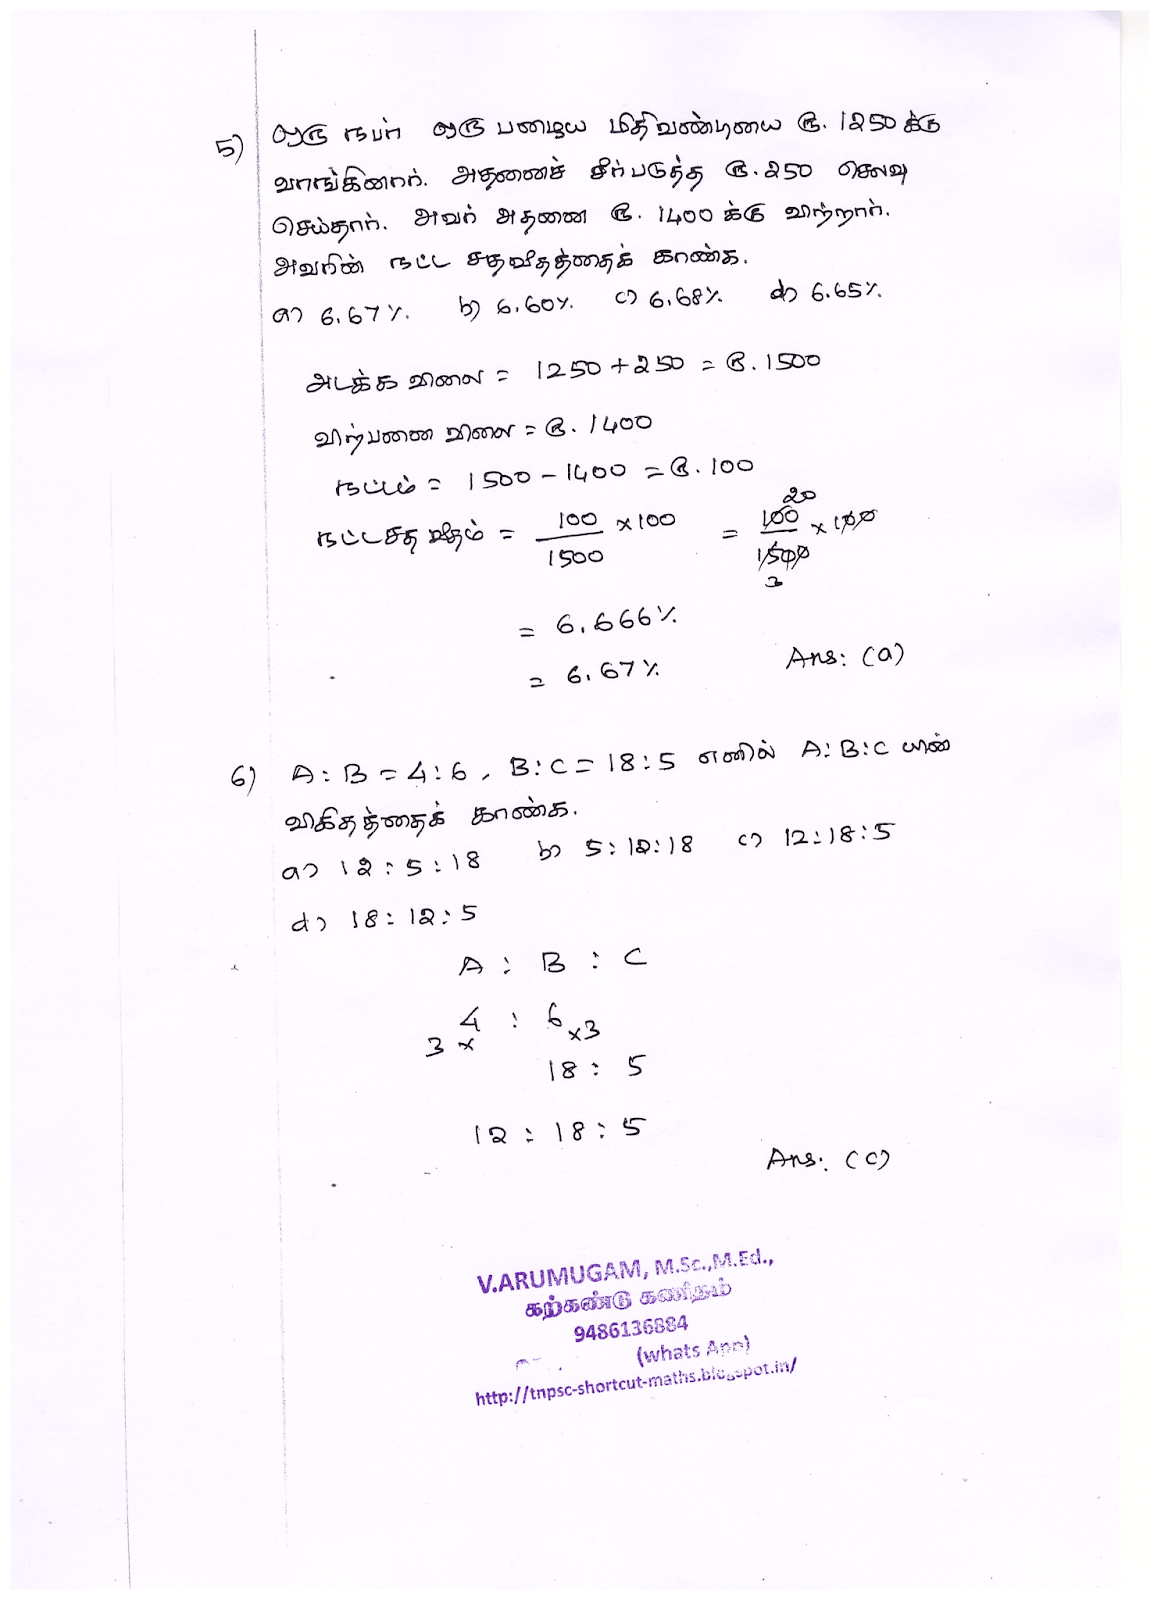 TNPSC – 2019 - District Educational Officer in the TN Educational Service, 2014-2017 EXAM - EXAM DATE: 02.03.2019